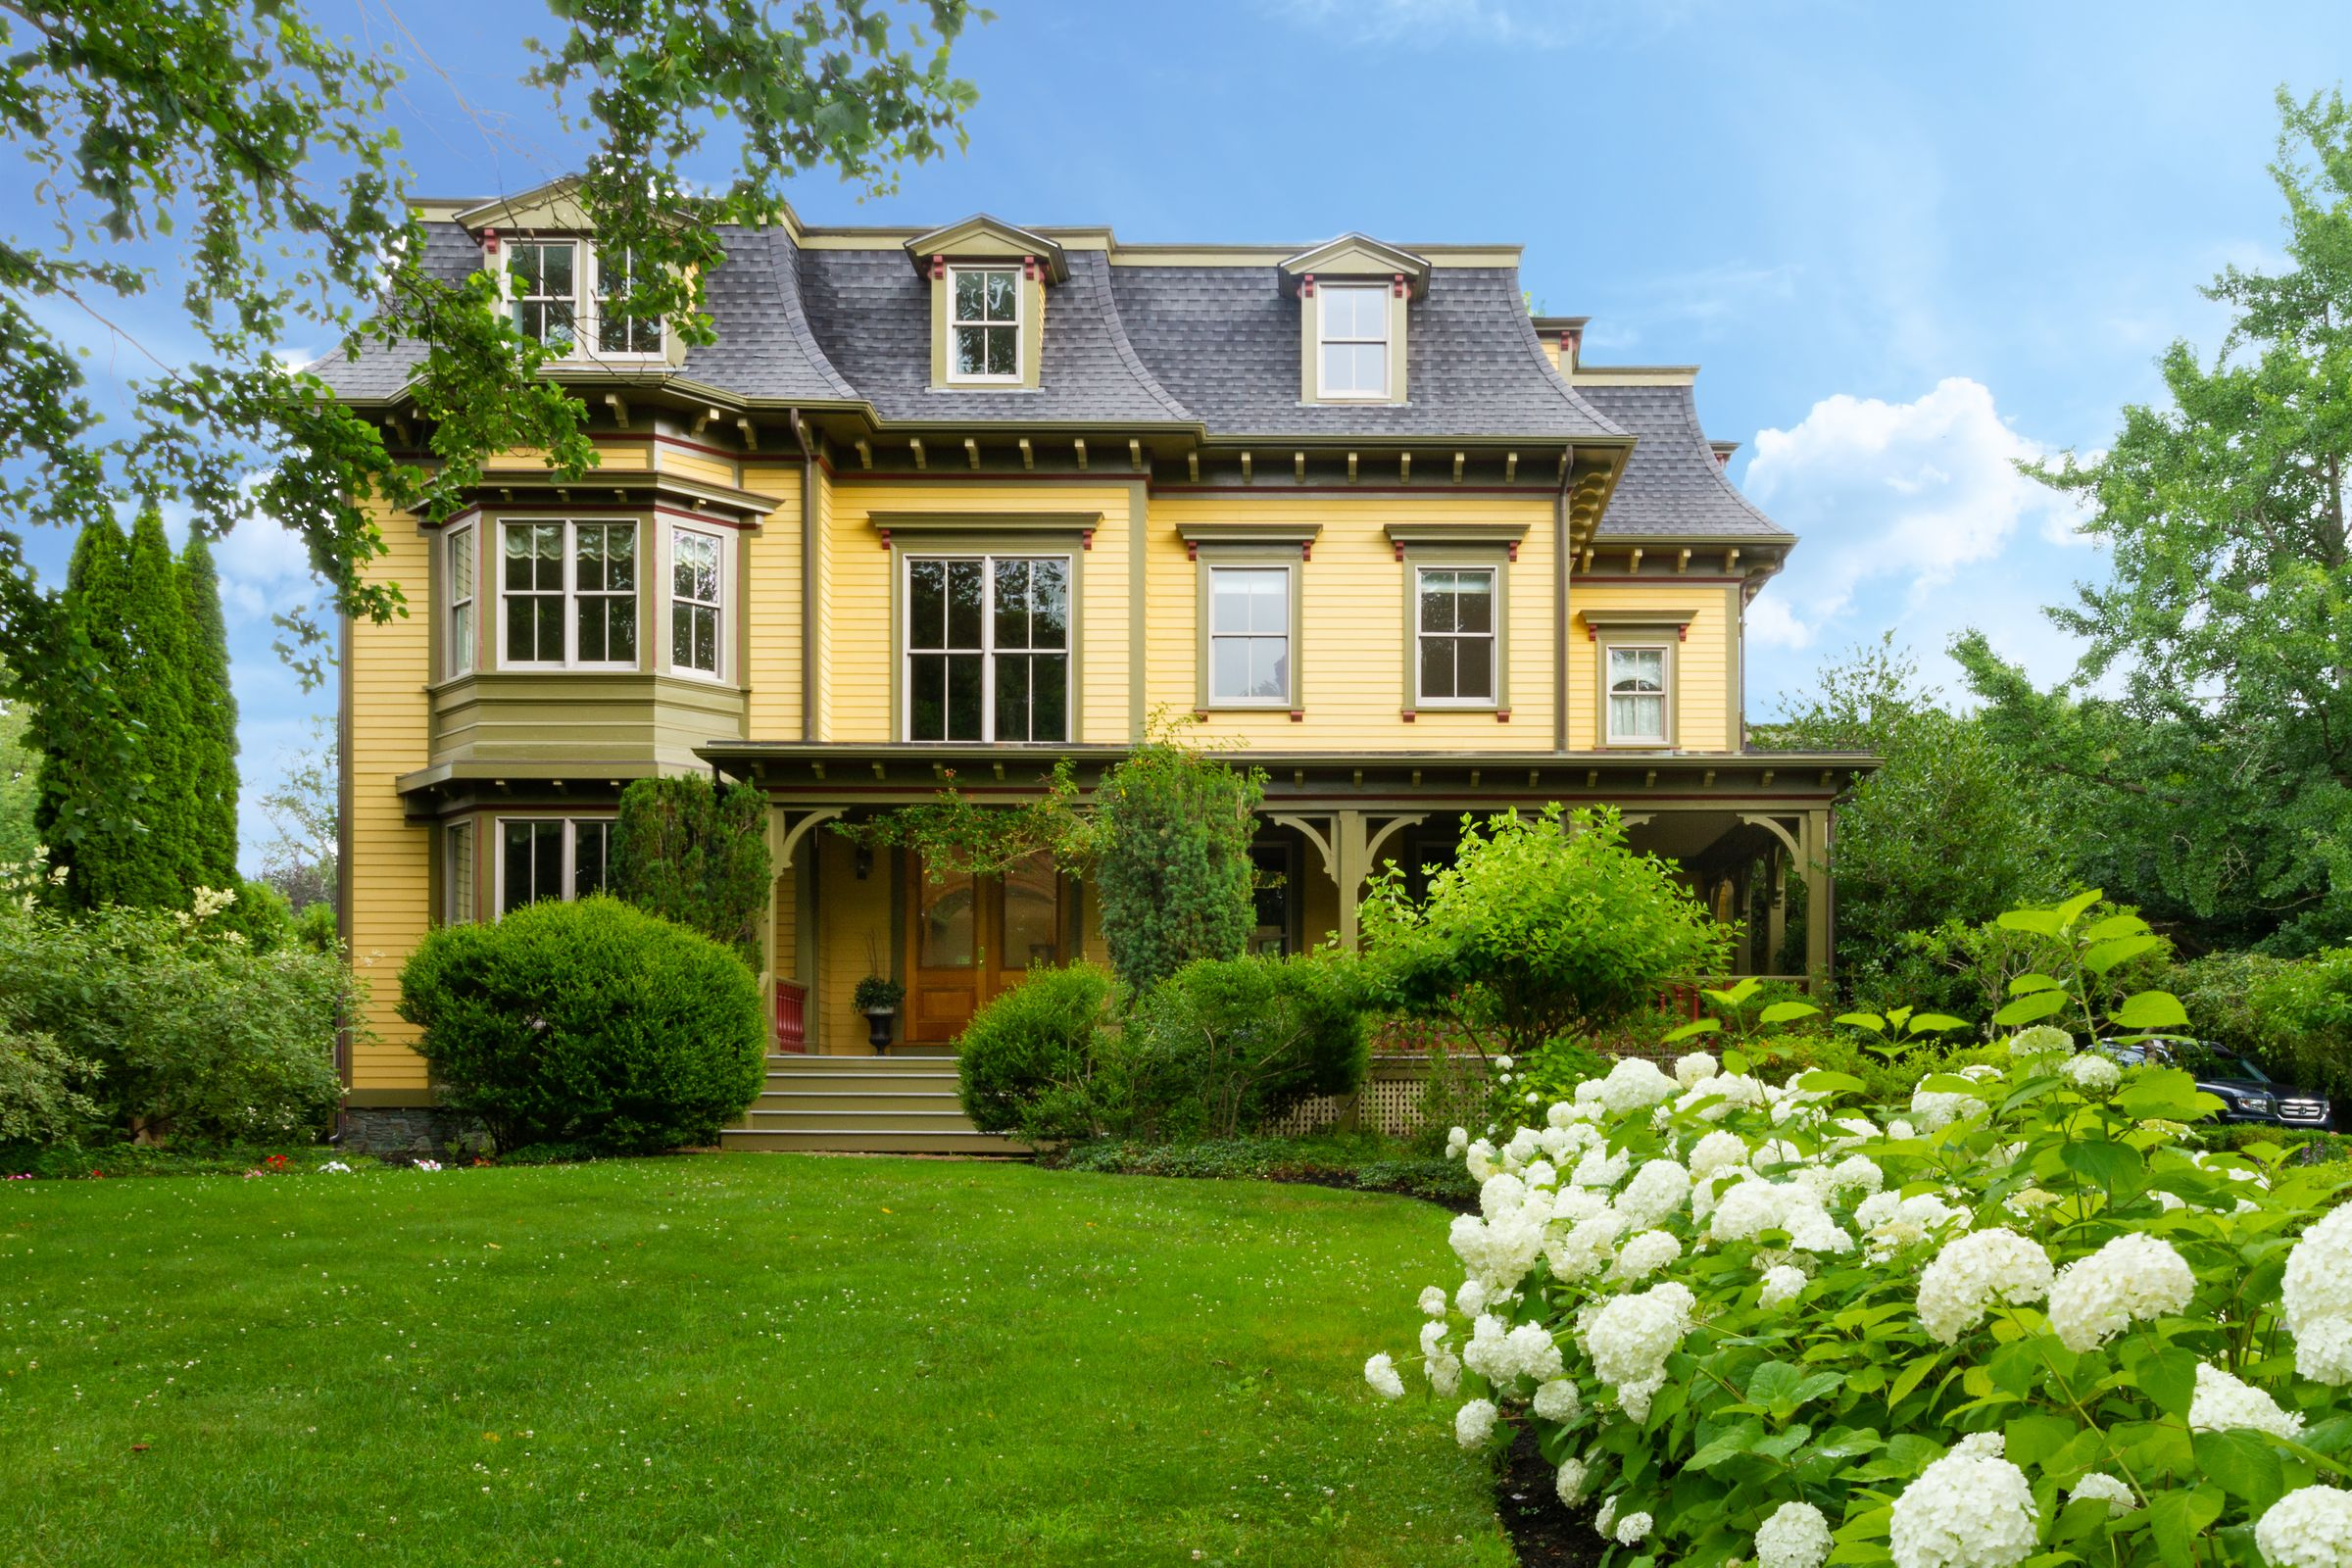 McCollough Of Mott & Chace And Toppa And Moore Of Lila Delman Sell 104 Old Beach Road For $2.1 million